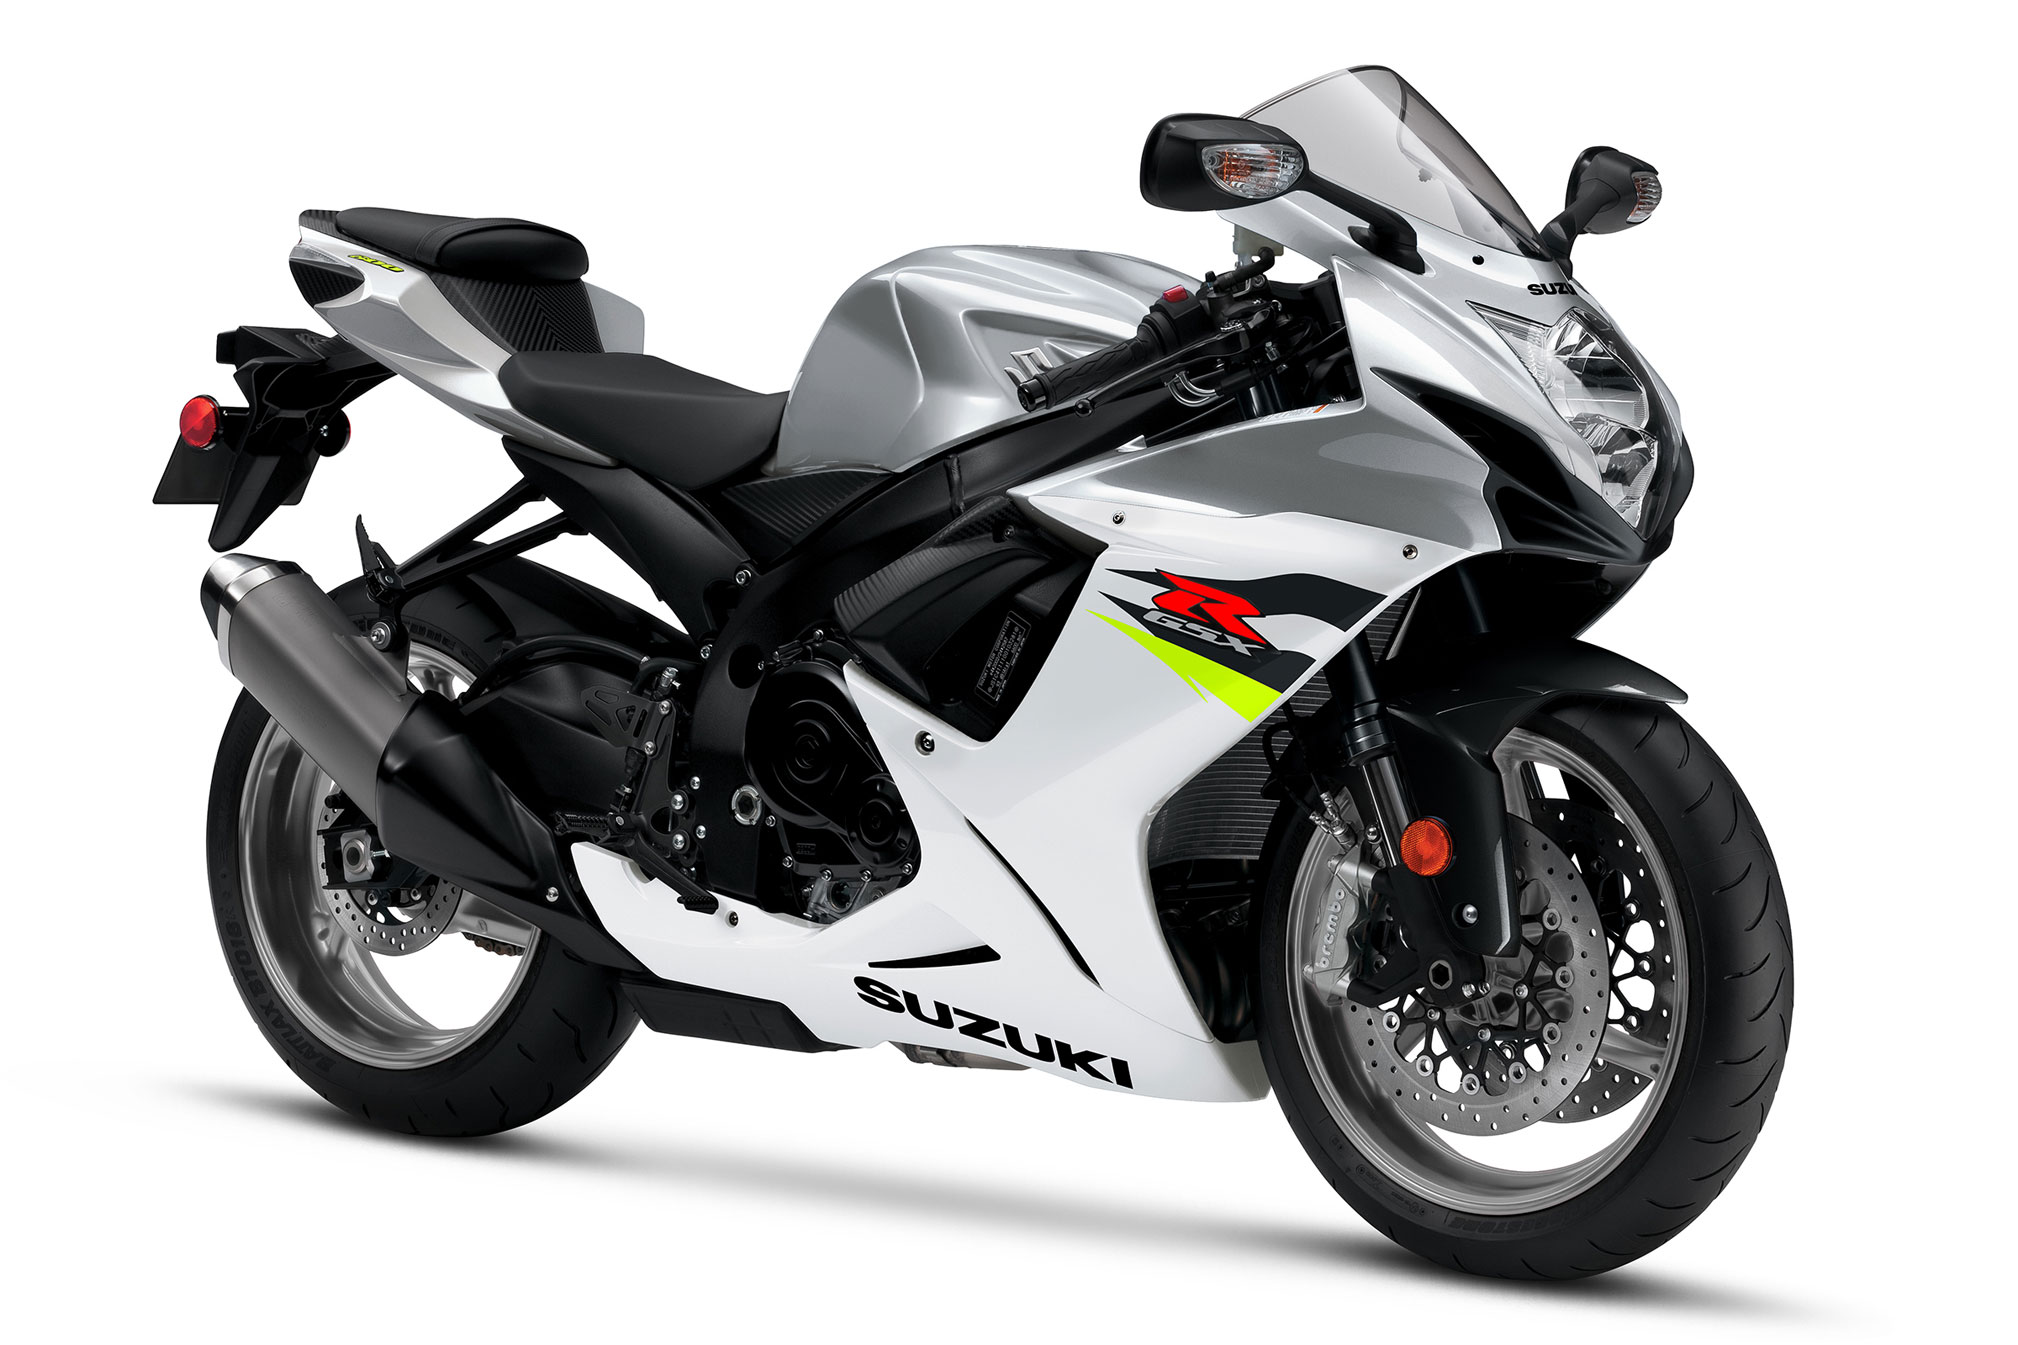 2018 suzuki gsx r600 review totalmotorcycle. Black Bedroom Furniture Sets. Home Design Ideas